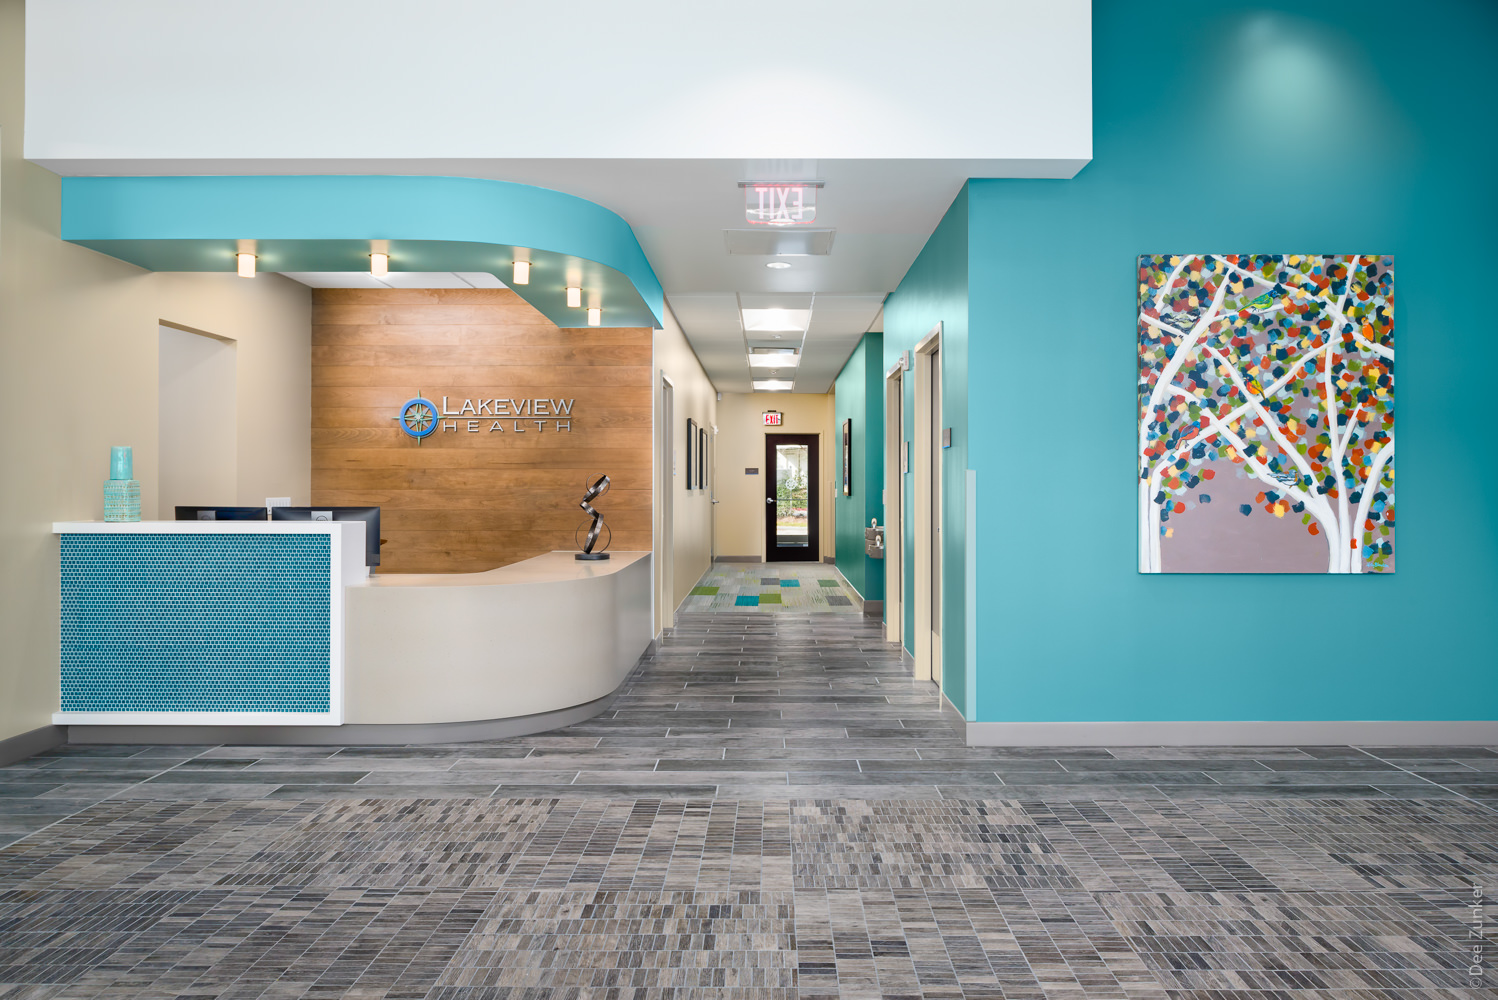 Entrance - Lakeview Health - Woodlands TX  Lakeview-201801-001.jpg  Houston Commercial Architectural Photographer Dee Zunker